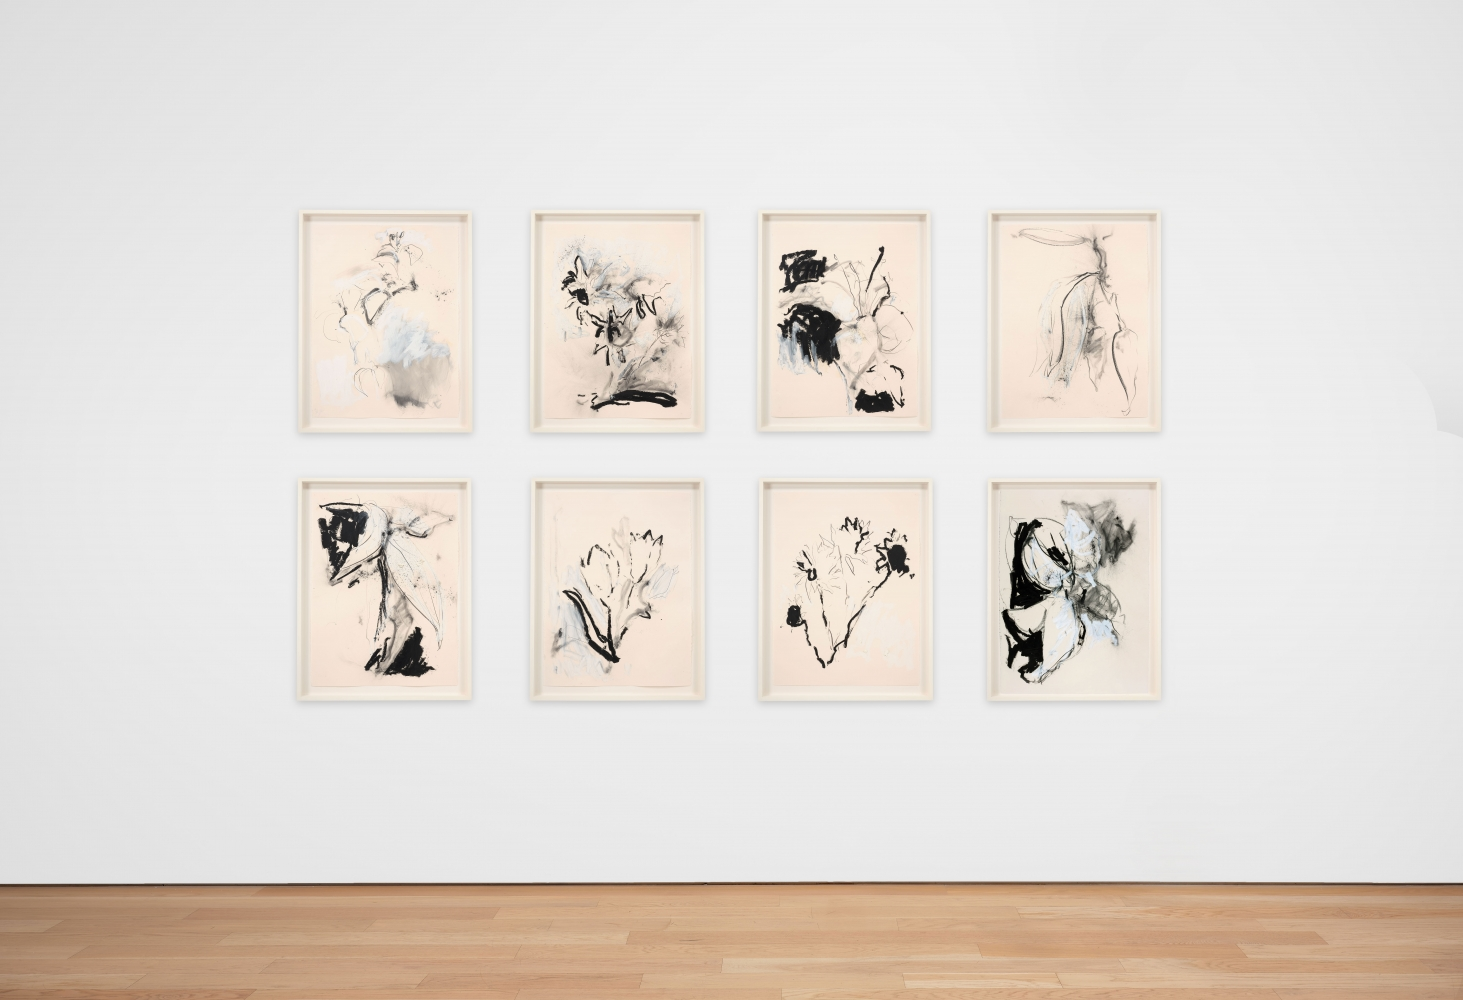 Joseph Havel  First Flowers (S.F.) 10, 2017  Graphite and oil paint on paper  30 x 23 inches  76.2 x 58.4 cm